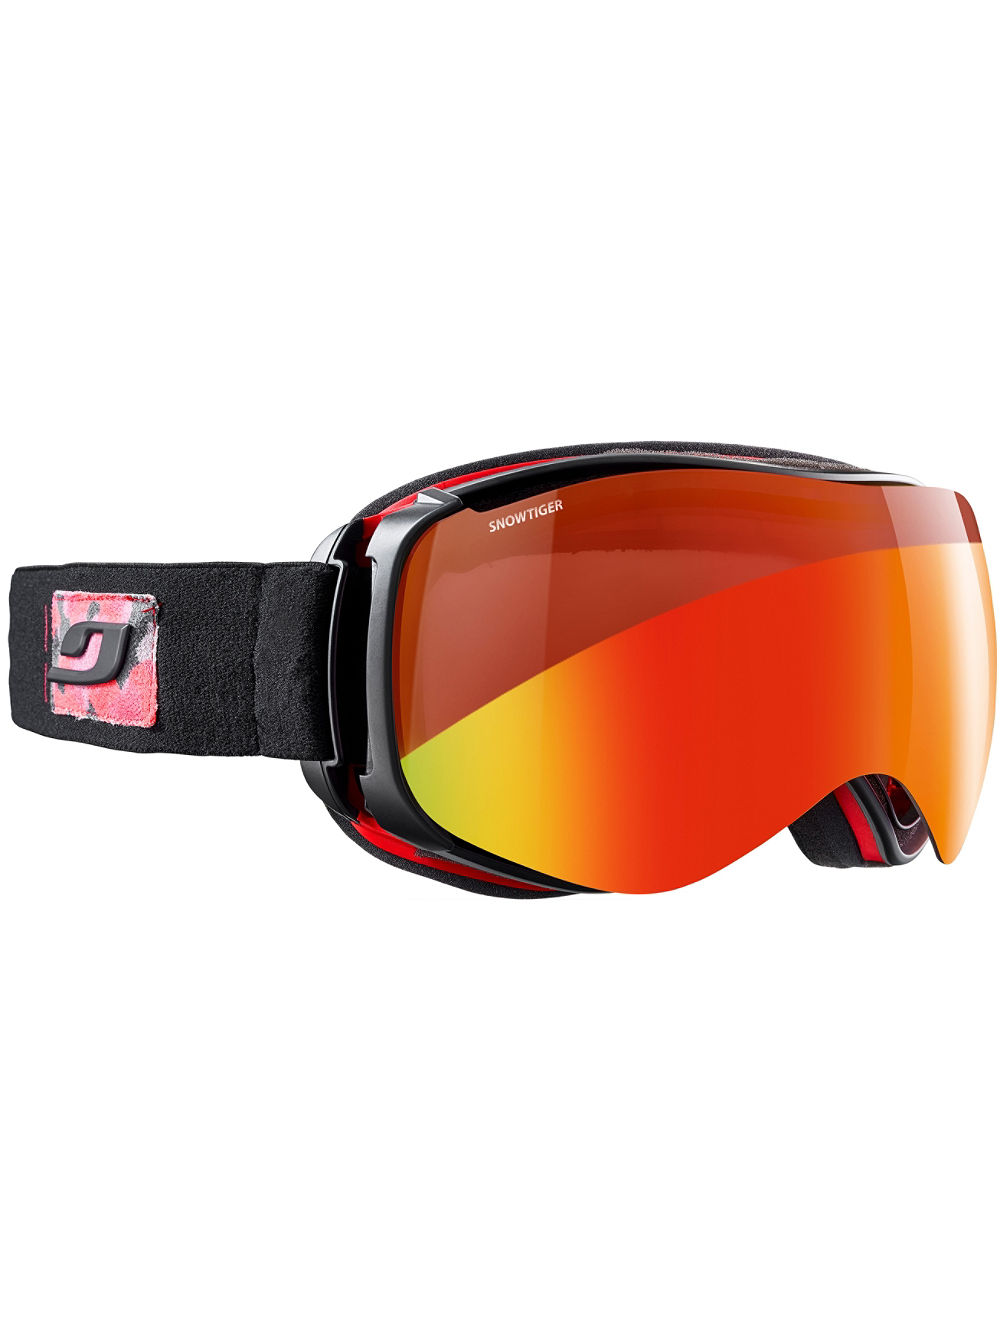 Starwind Black Camouflage/Red Goggle